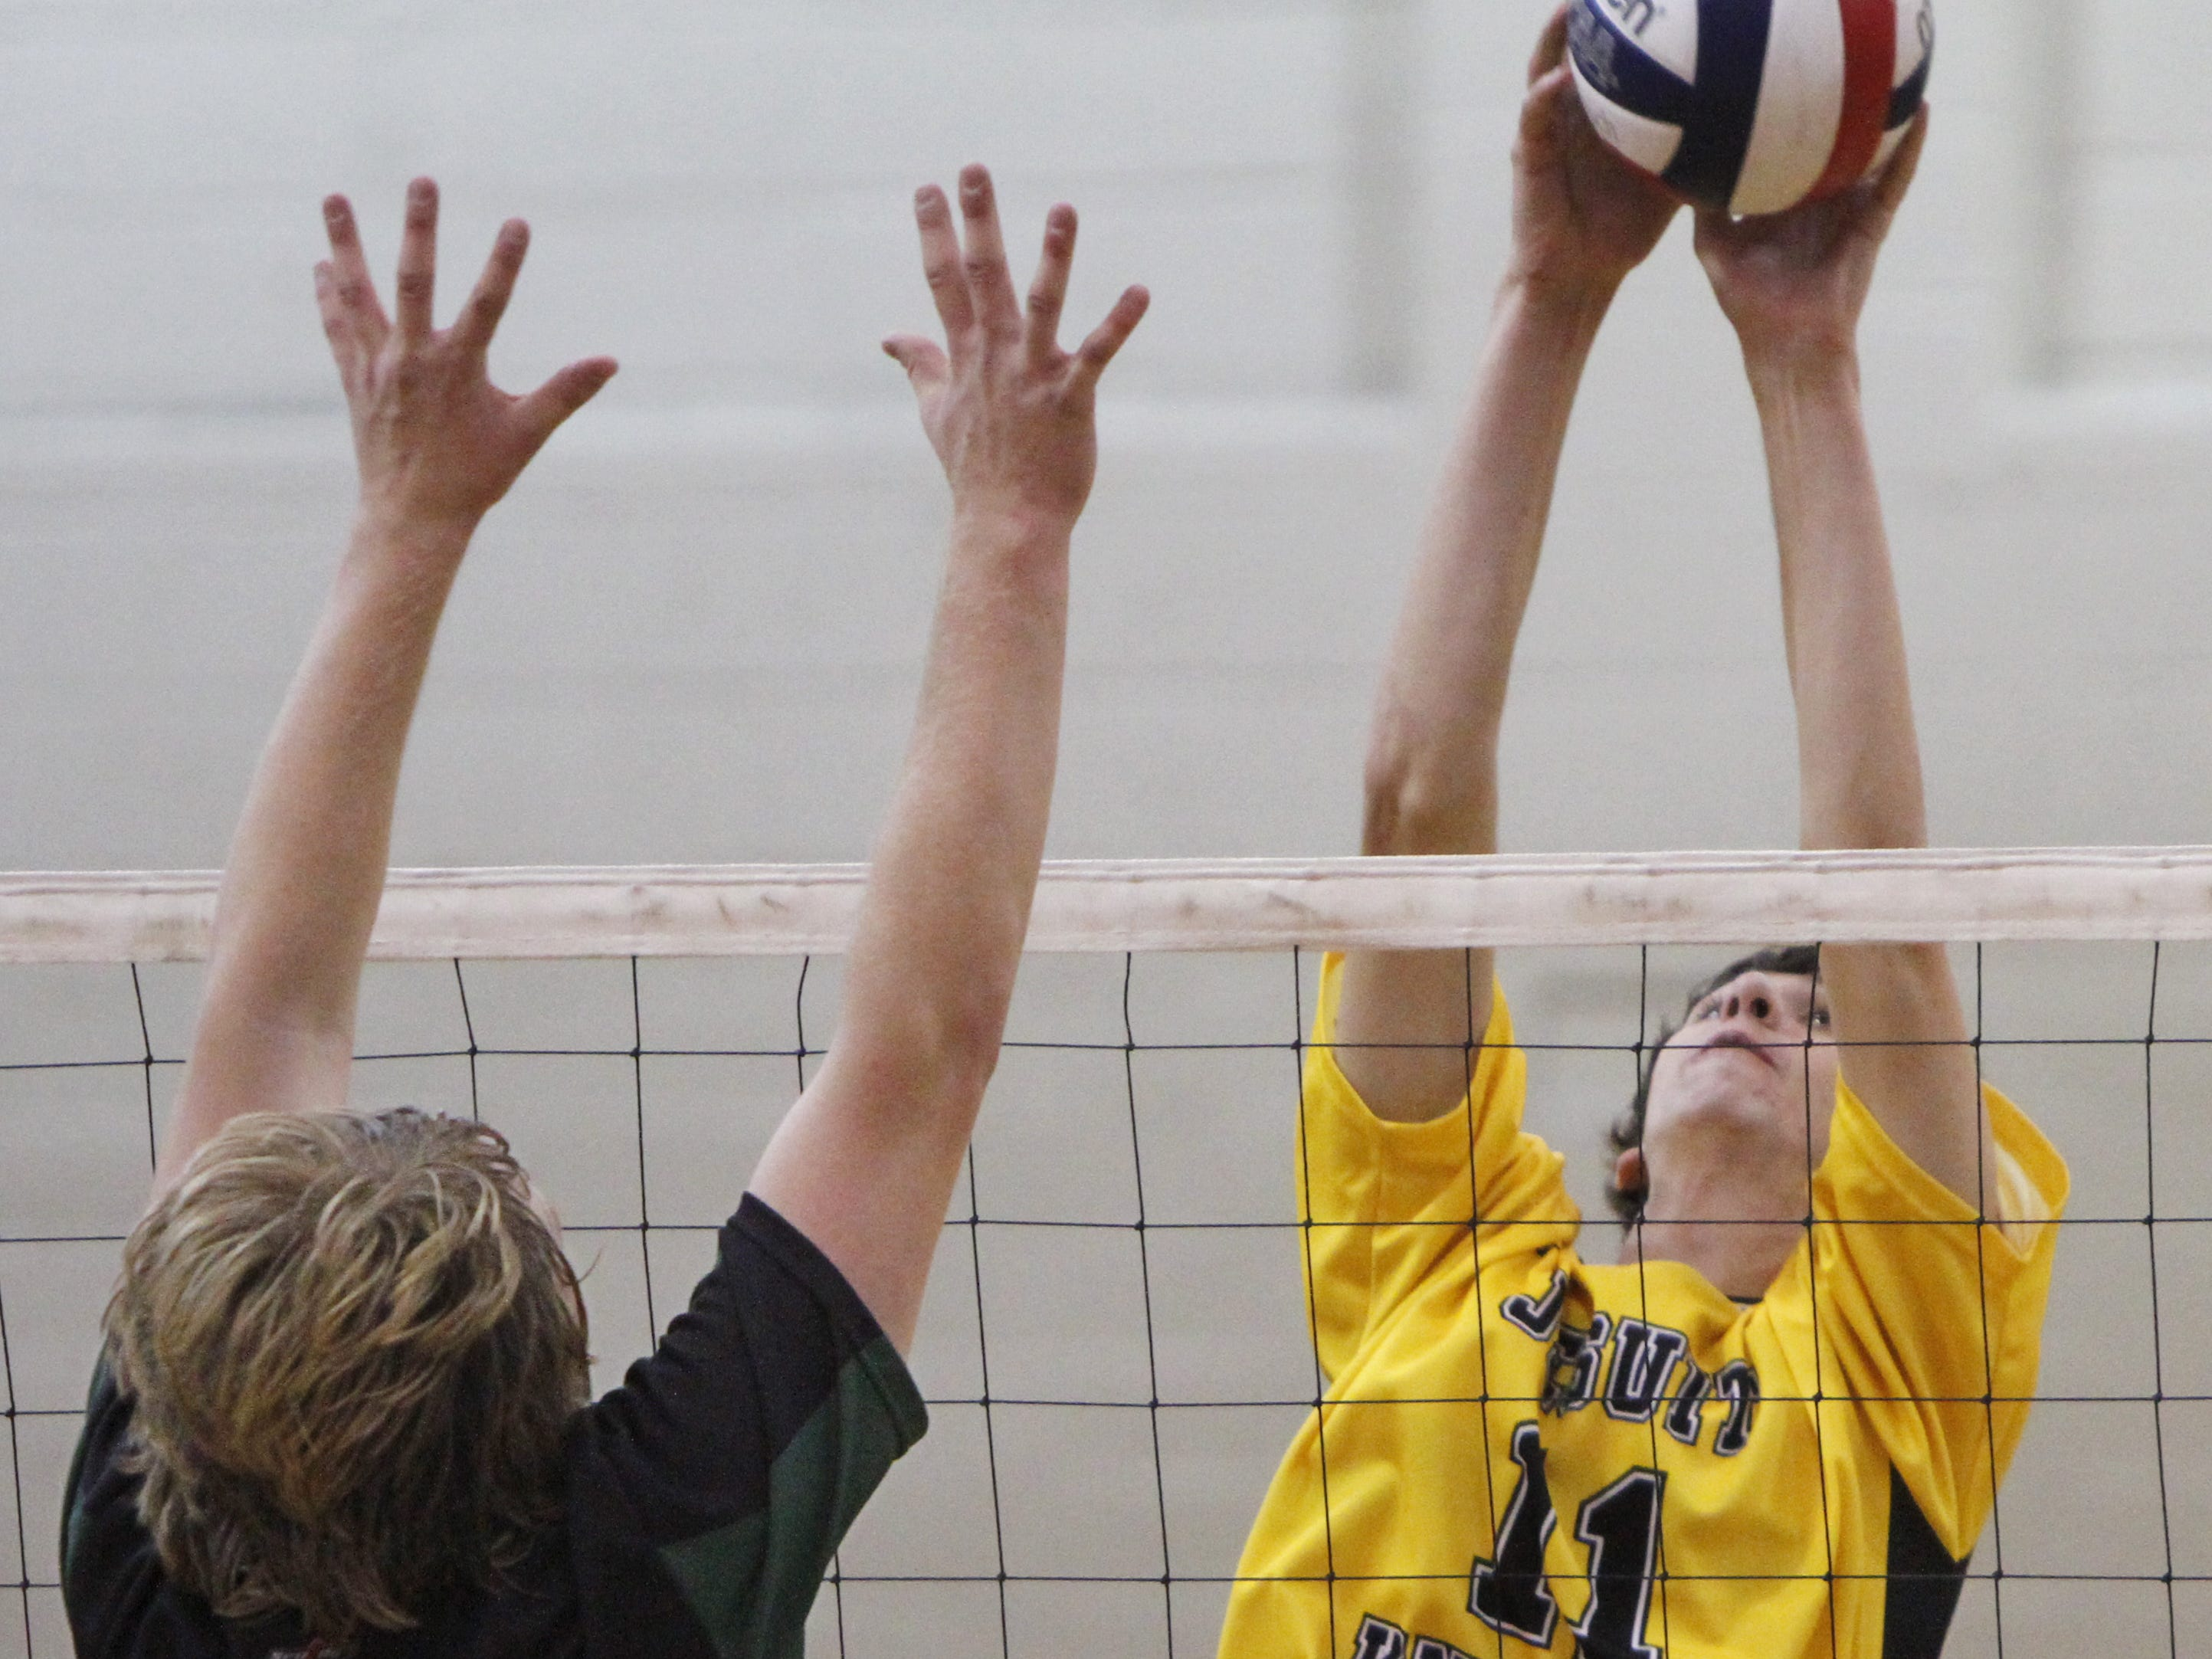 McQuaid's Michael McAlpin, right, pushes a shot past Rush Henrietta's Jesse Neely for a point during their match Monday, Oct. 15, 2012 at McQuaid Jesuit in Brighton.  McQuaid won the match in straight sets 3-0.